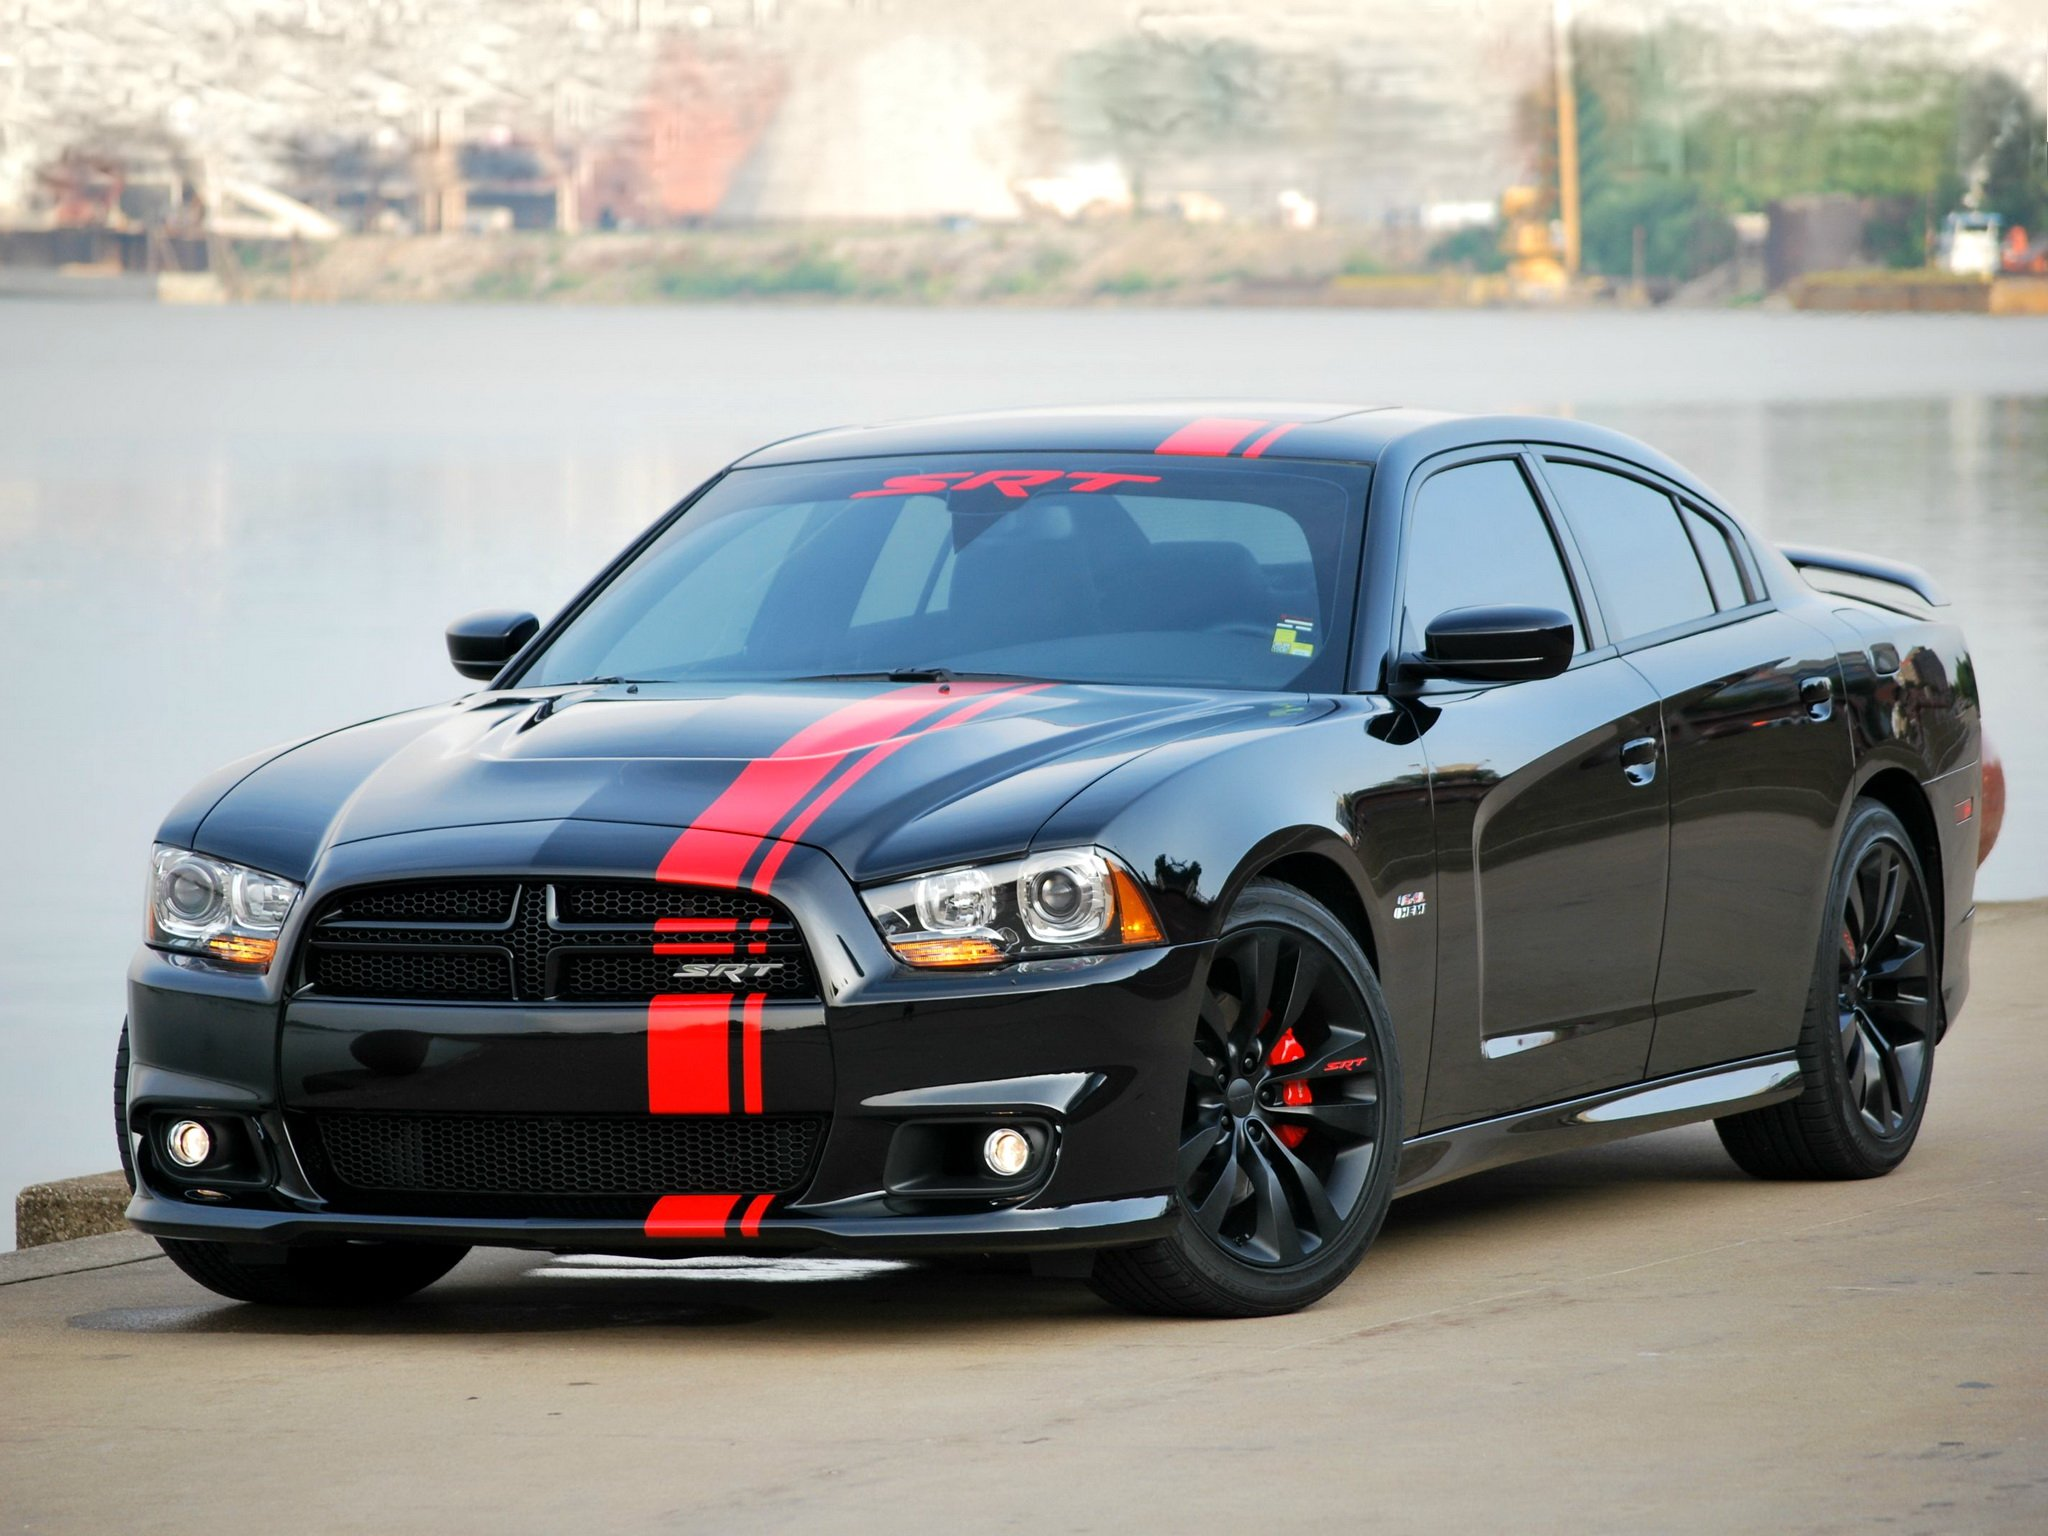 2011 dodge charger srt8 muscle h wallpaper 2048x1536 287951 wallpaperup. Black Bedroom Furniture Sets. Home Design Ideas